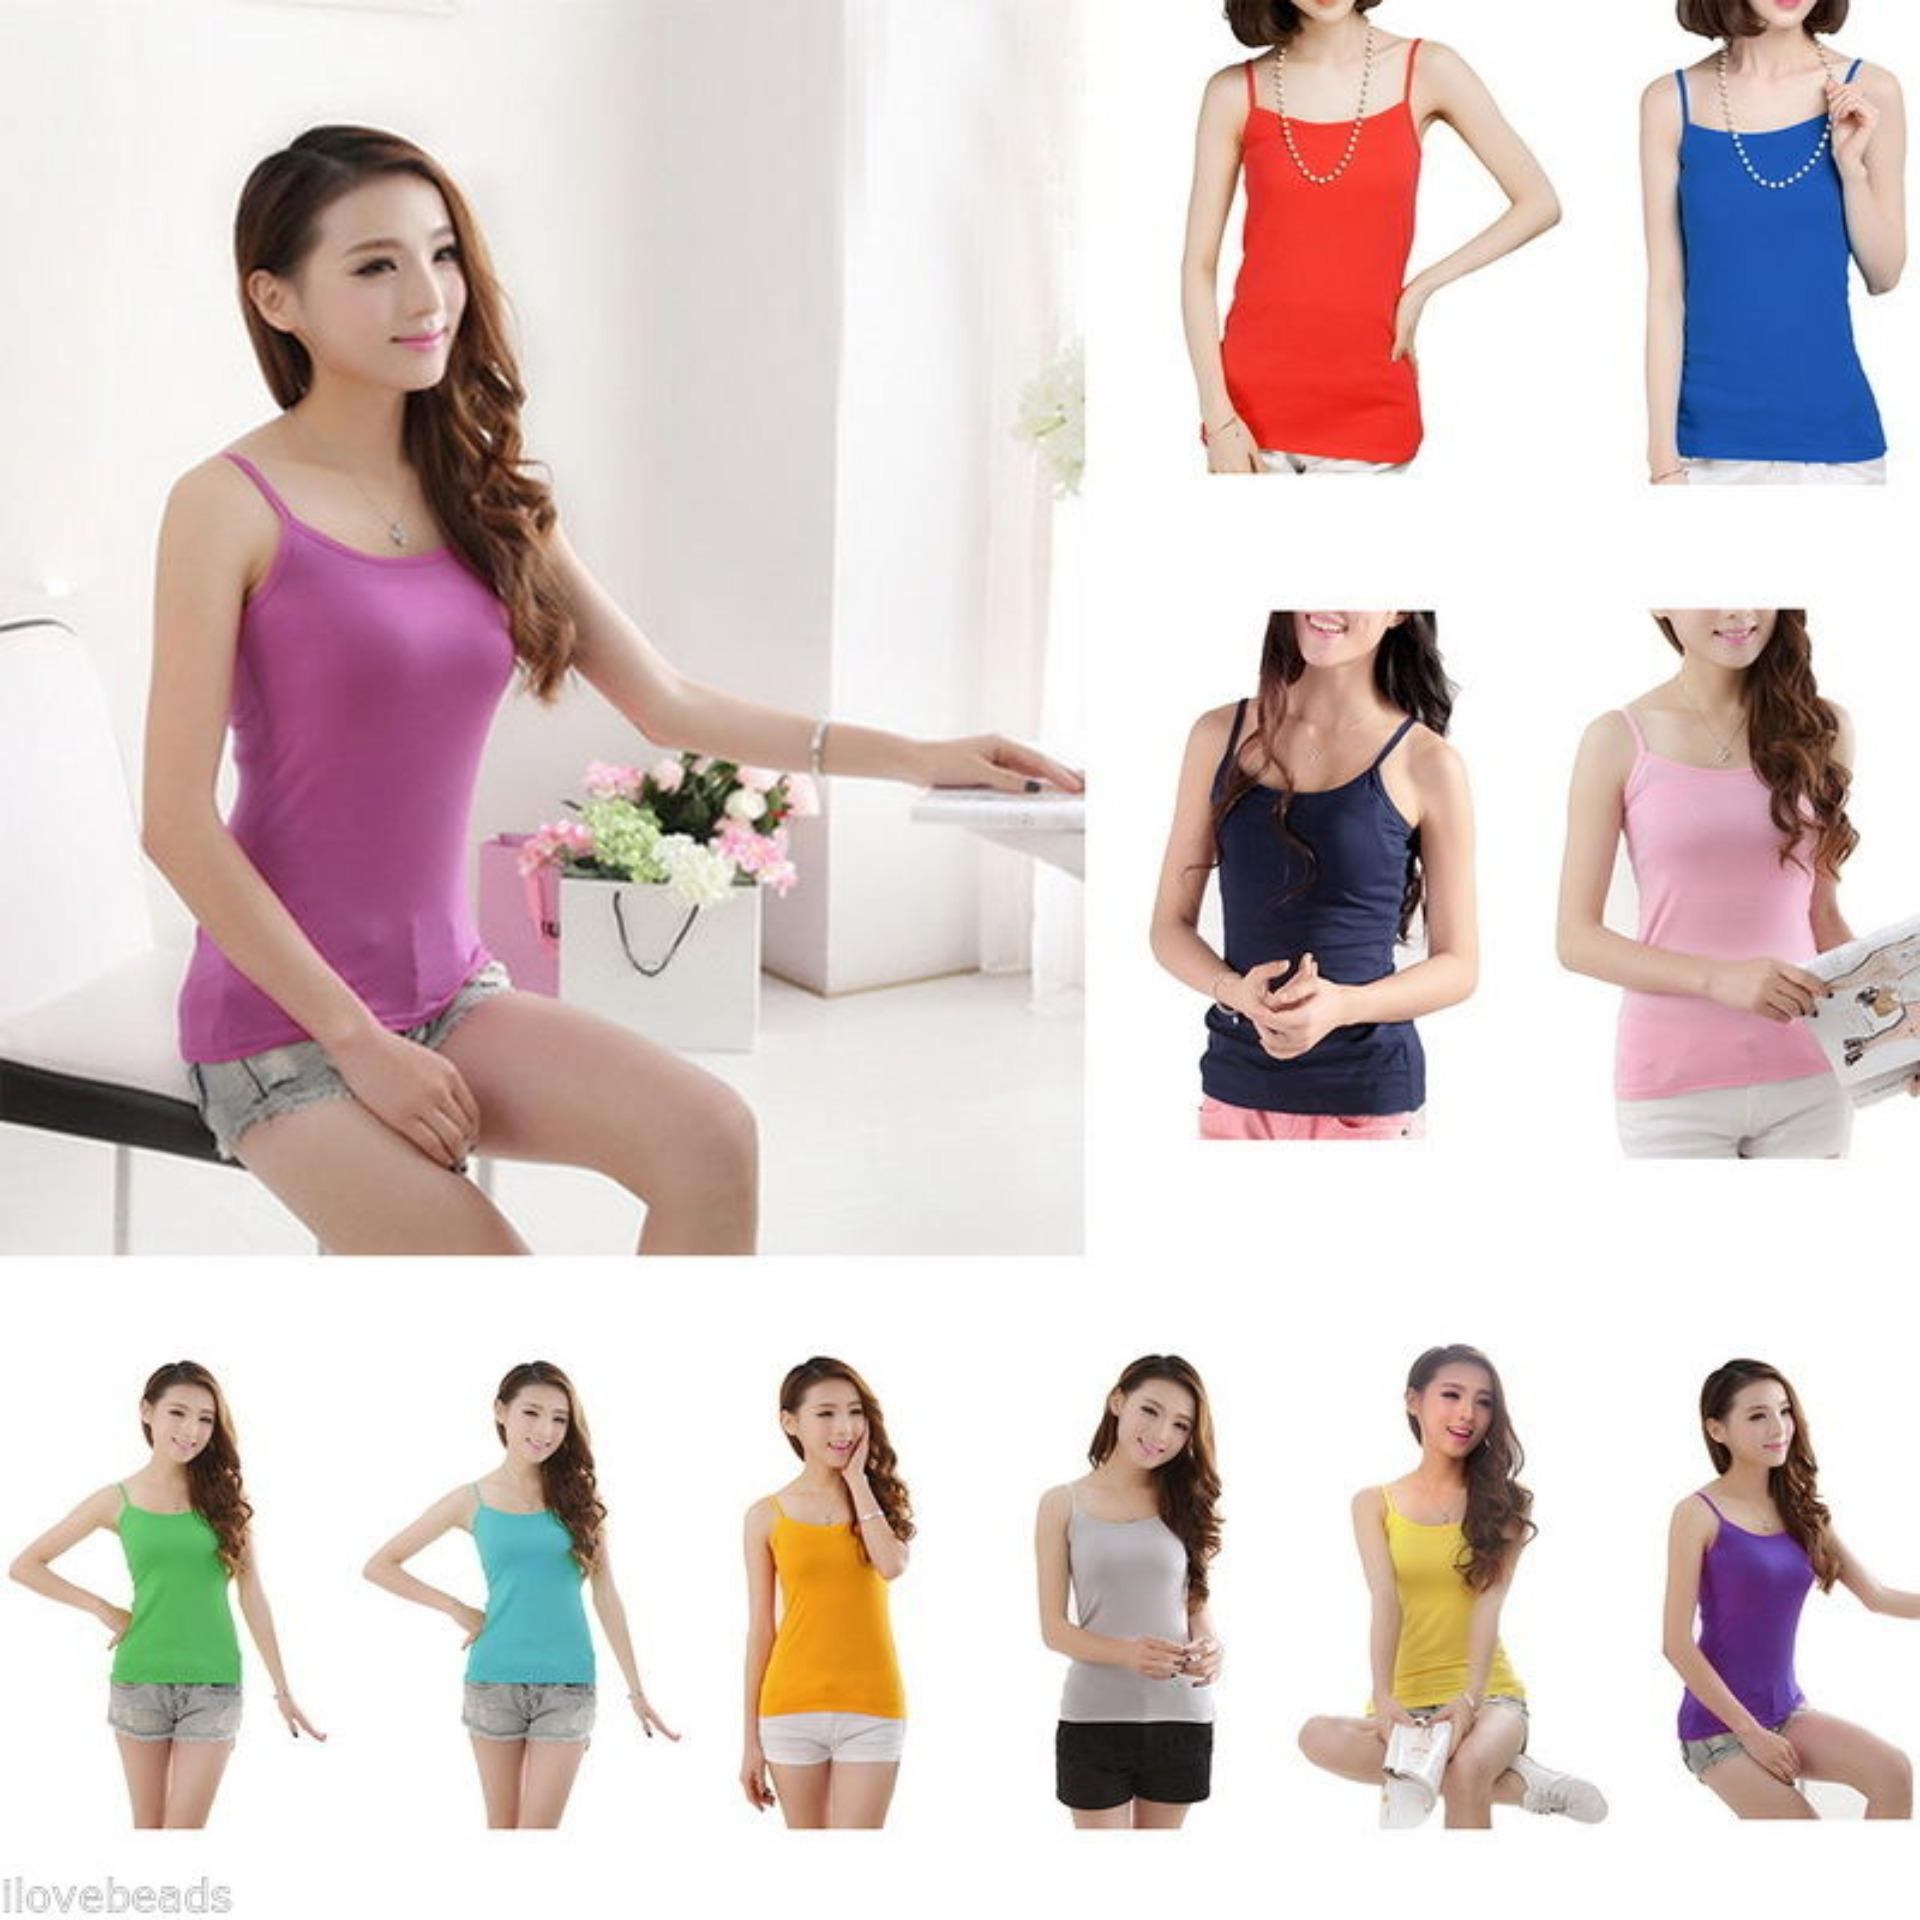 Buy Sell Cheapest Tangtop Cowok 1502 Best Quality Product Deals Tank Top Bra Cup Bustier Singlet Busa 6 Pcs Tanktop Sleeveles Berbahan Lembut Harga Grosir